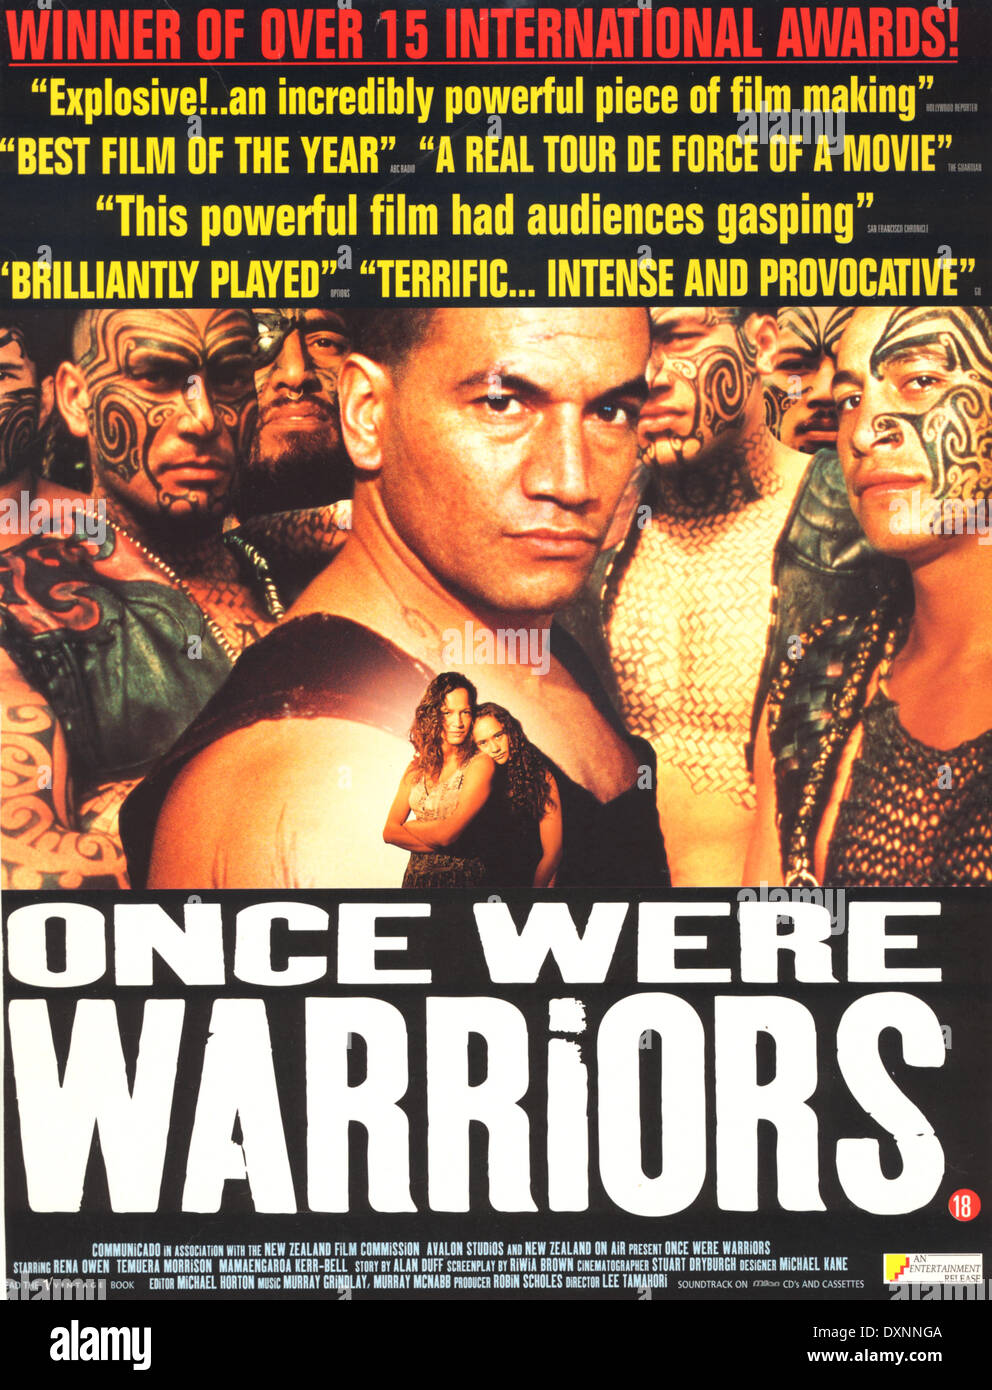 Once were warriors soundtrack.